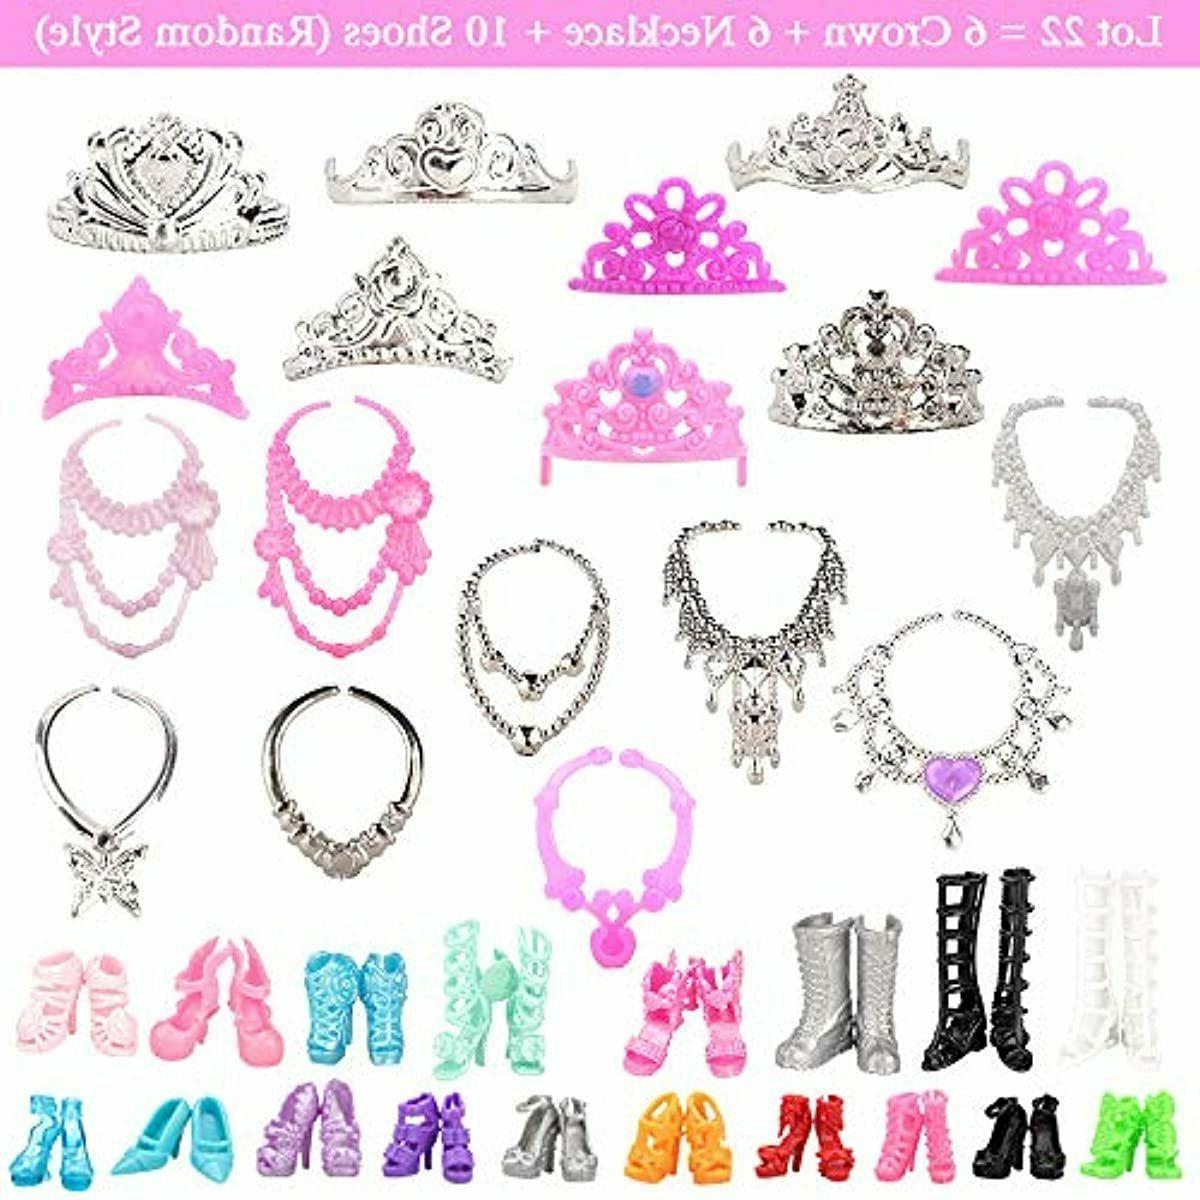 BARWA Barbi Doll and 10 pcs Party 22 Shoe